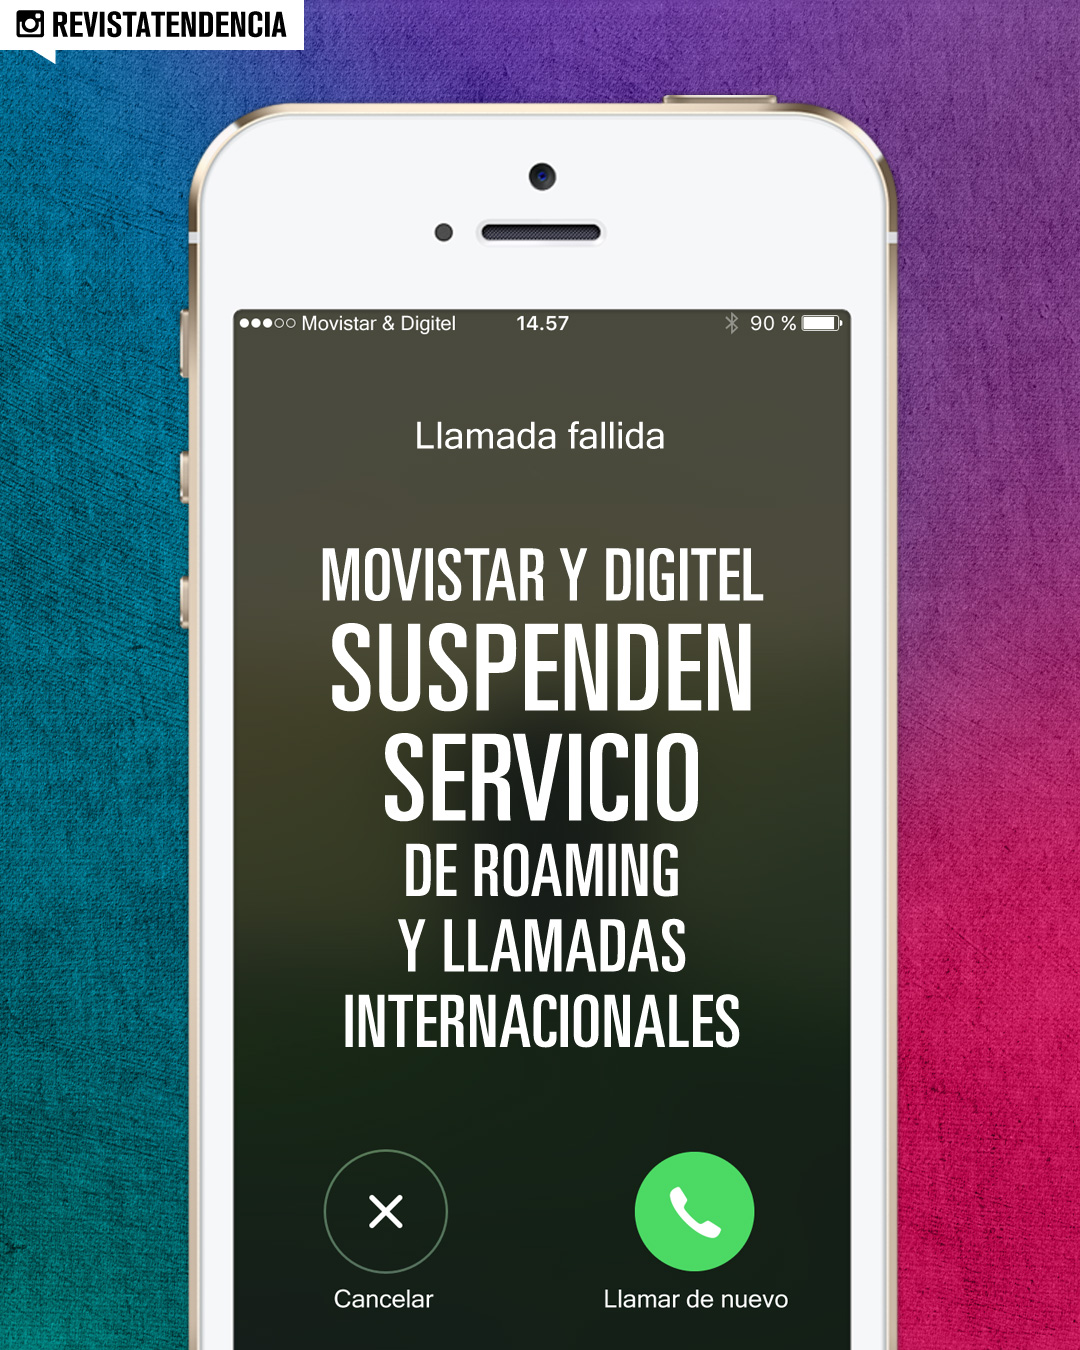 movistar-digitel-suspenden-llamadas-internacionales-2016-1080x1350